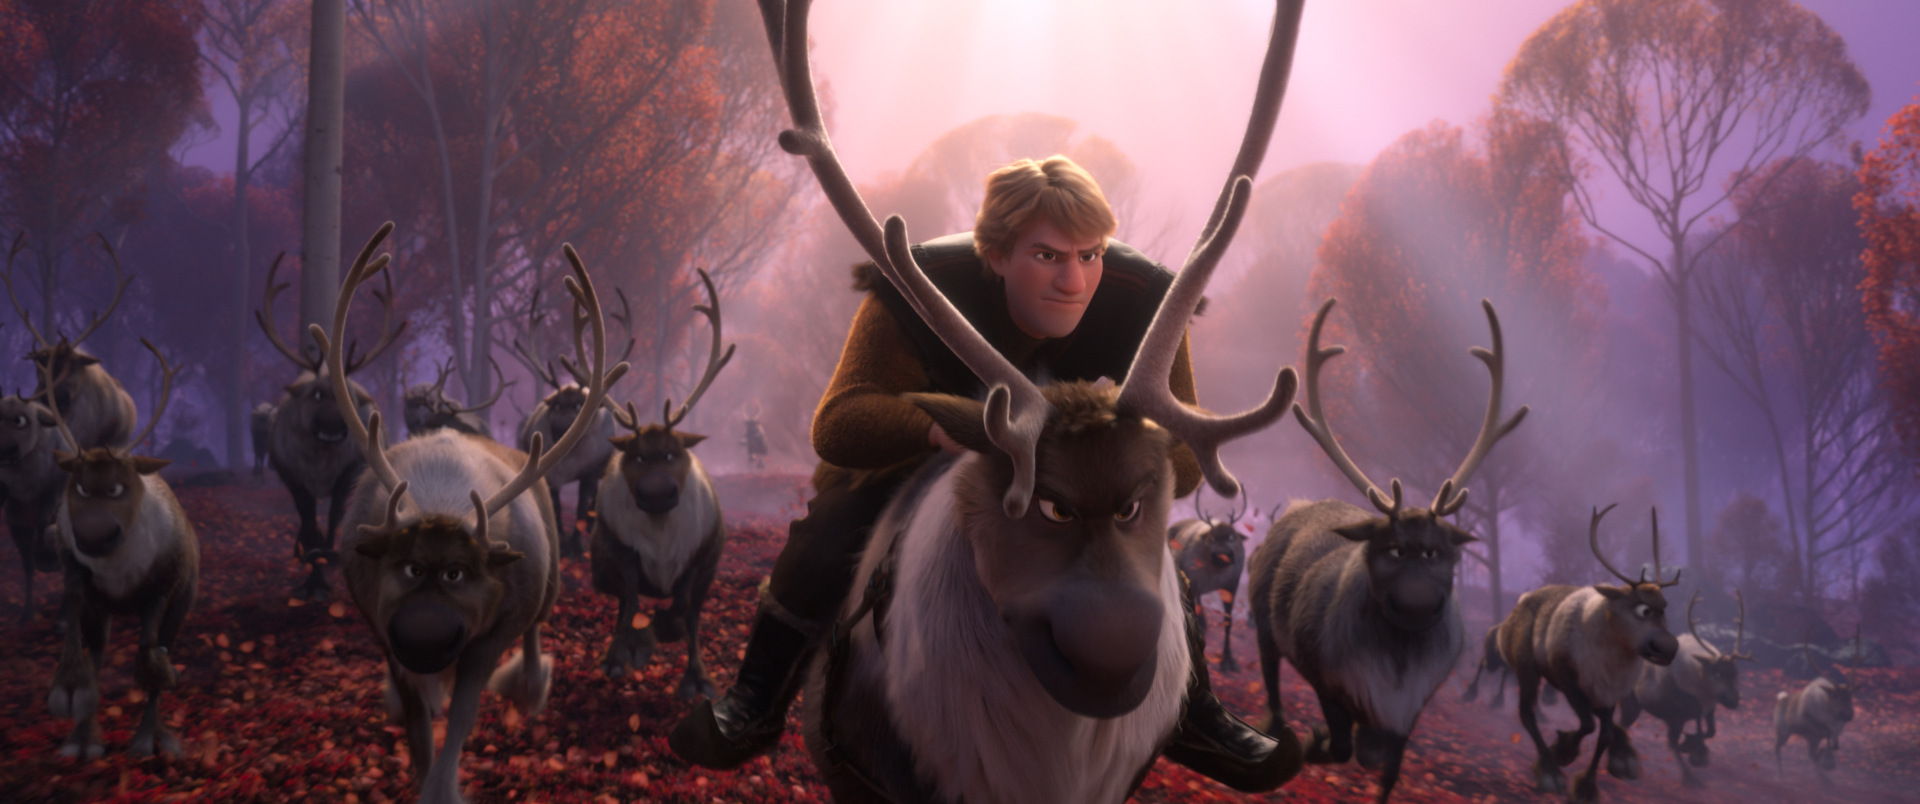 Jonathan Groff as Kristoff and Sven in Frozen 2